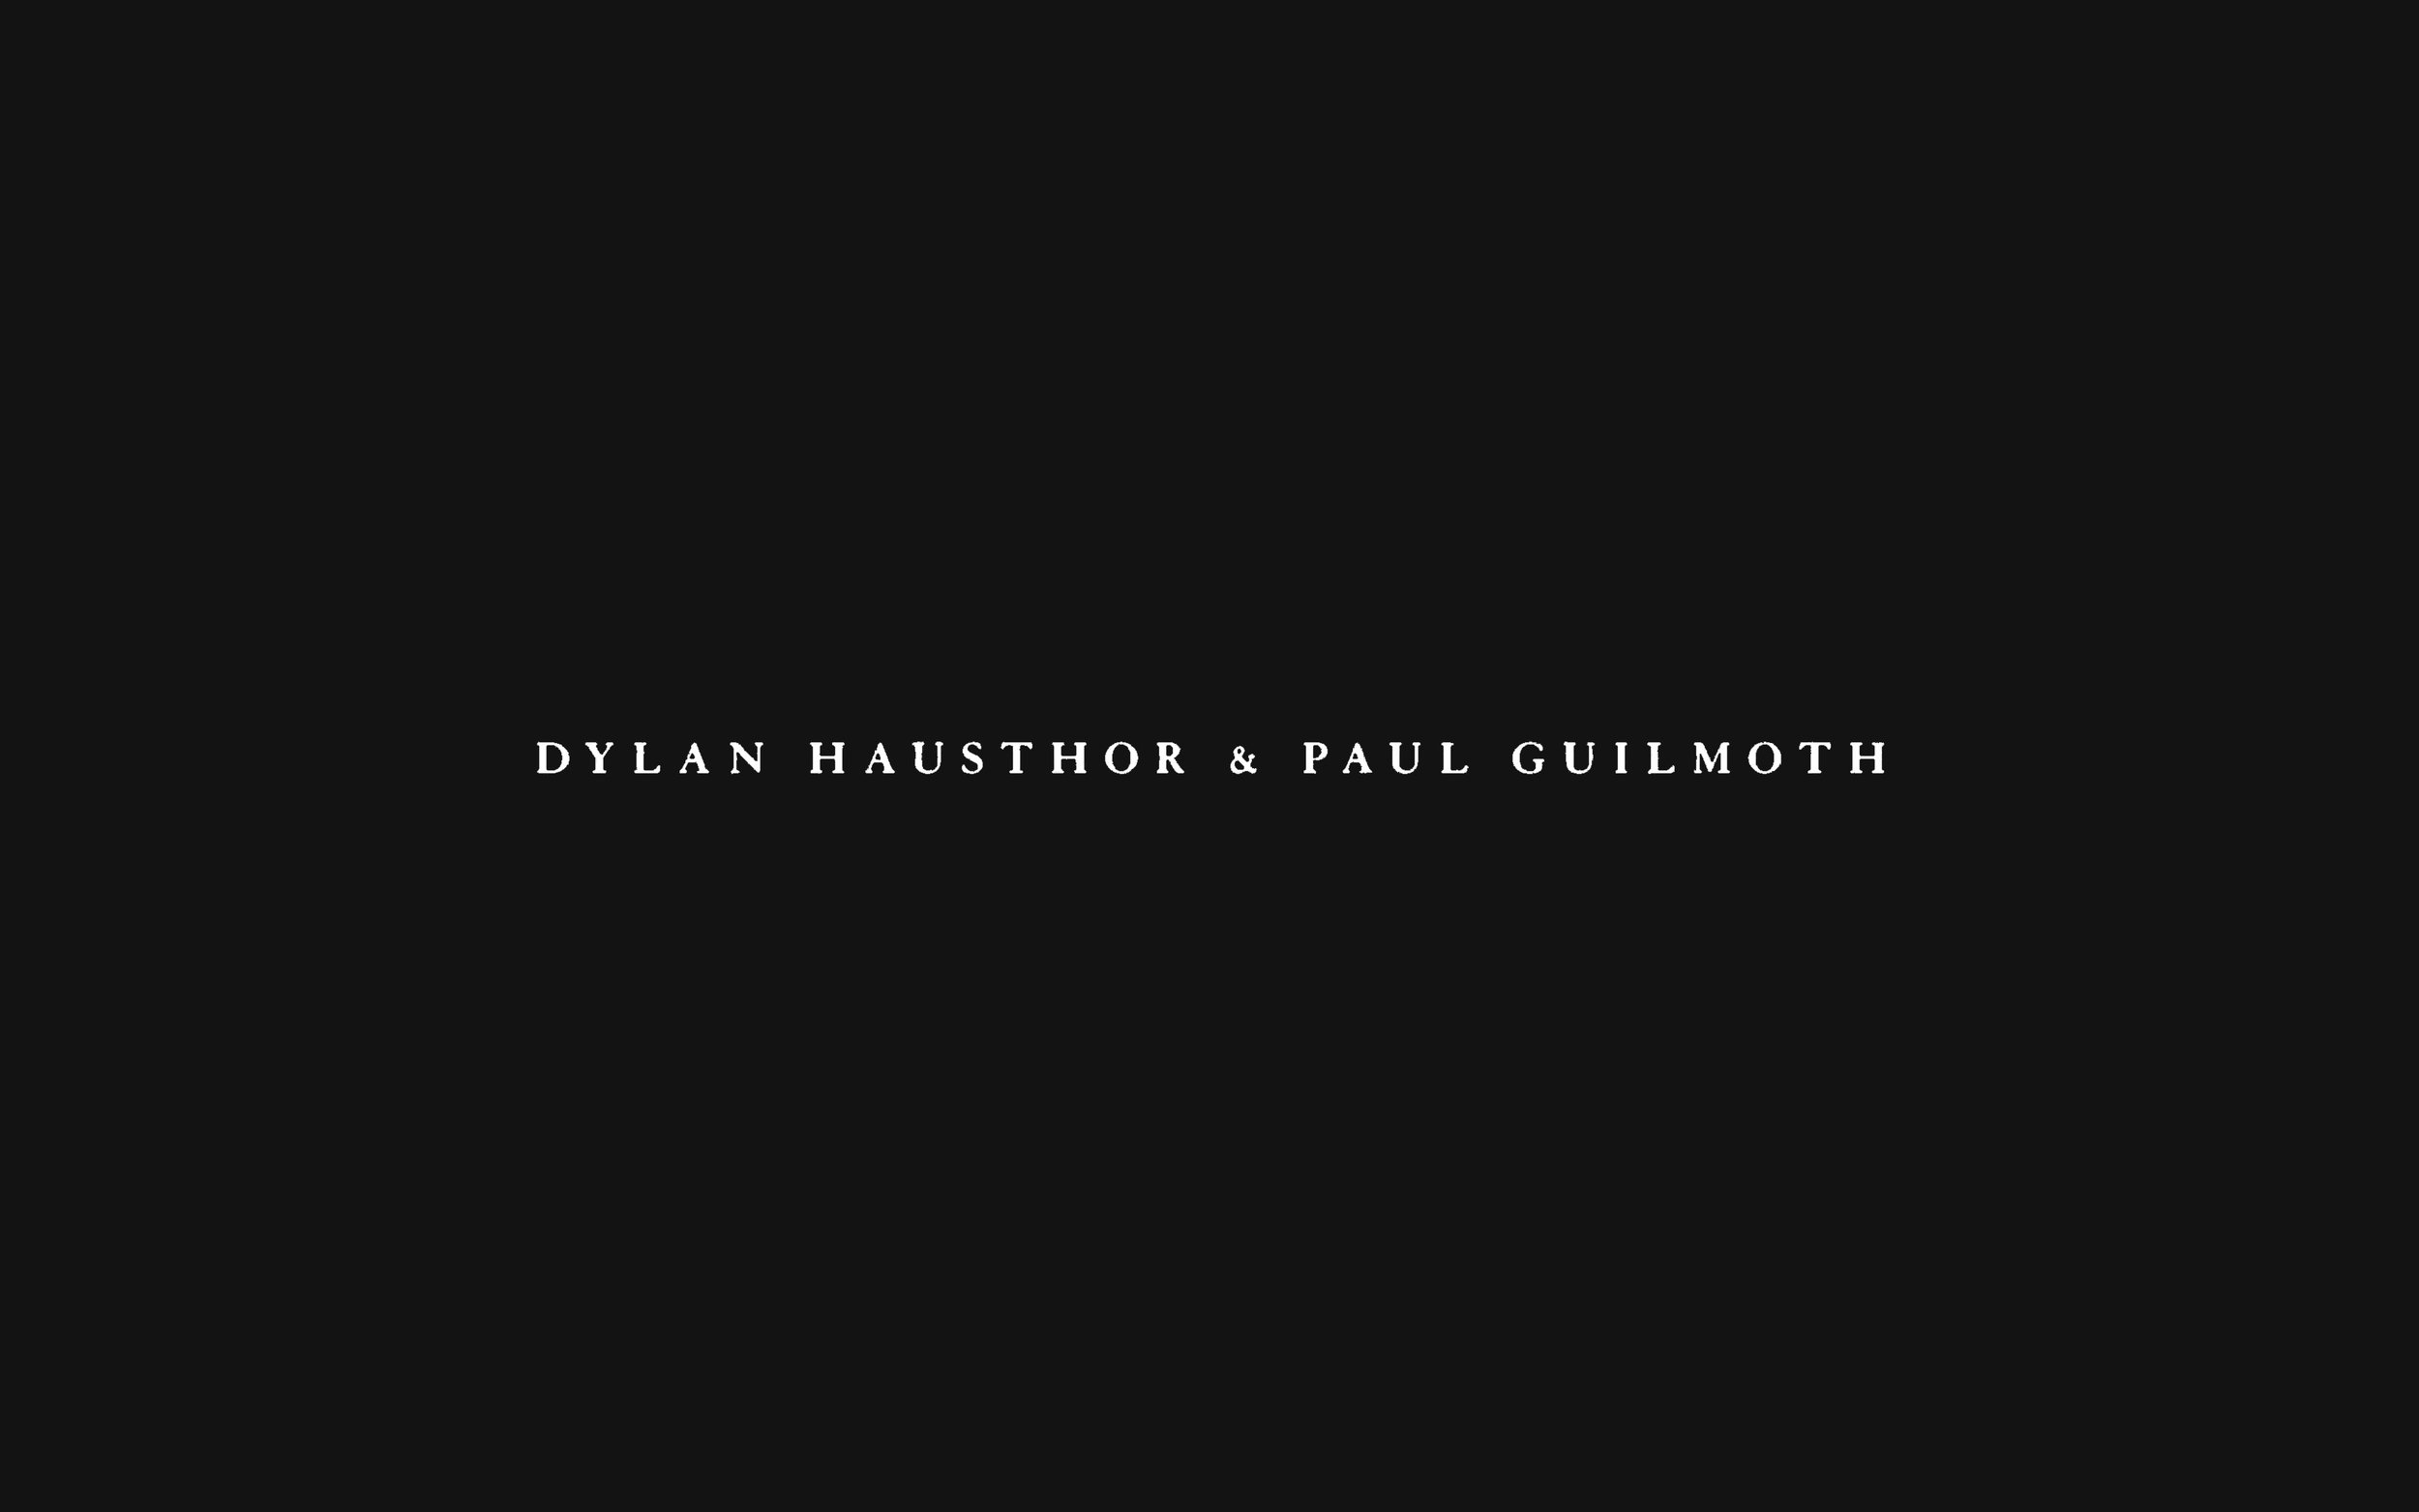 1A__Dylan_Hausthor_&_Paul_Guilmoth_00.jpg